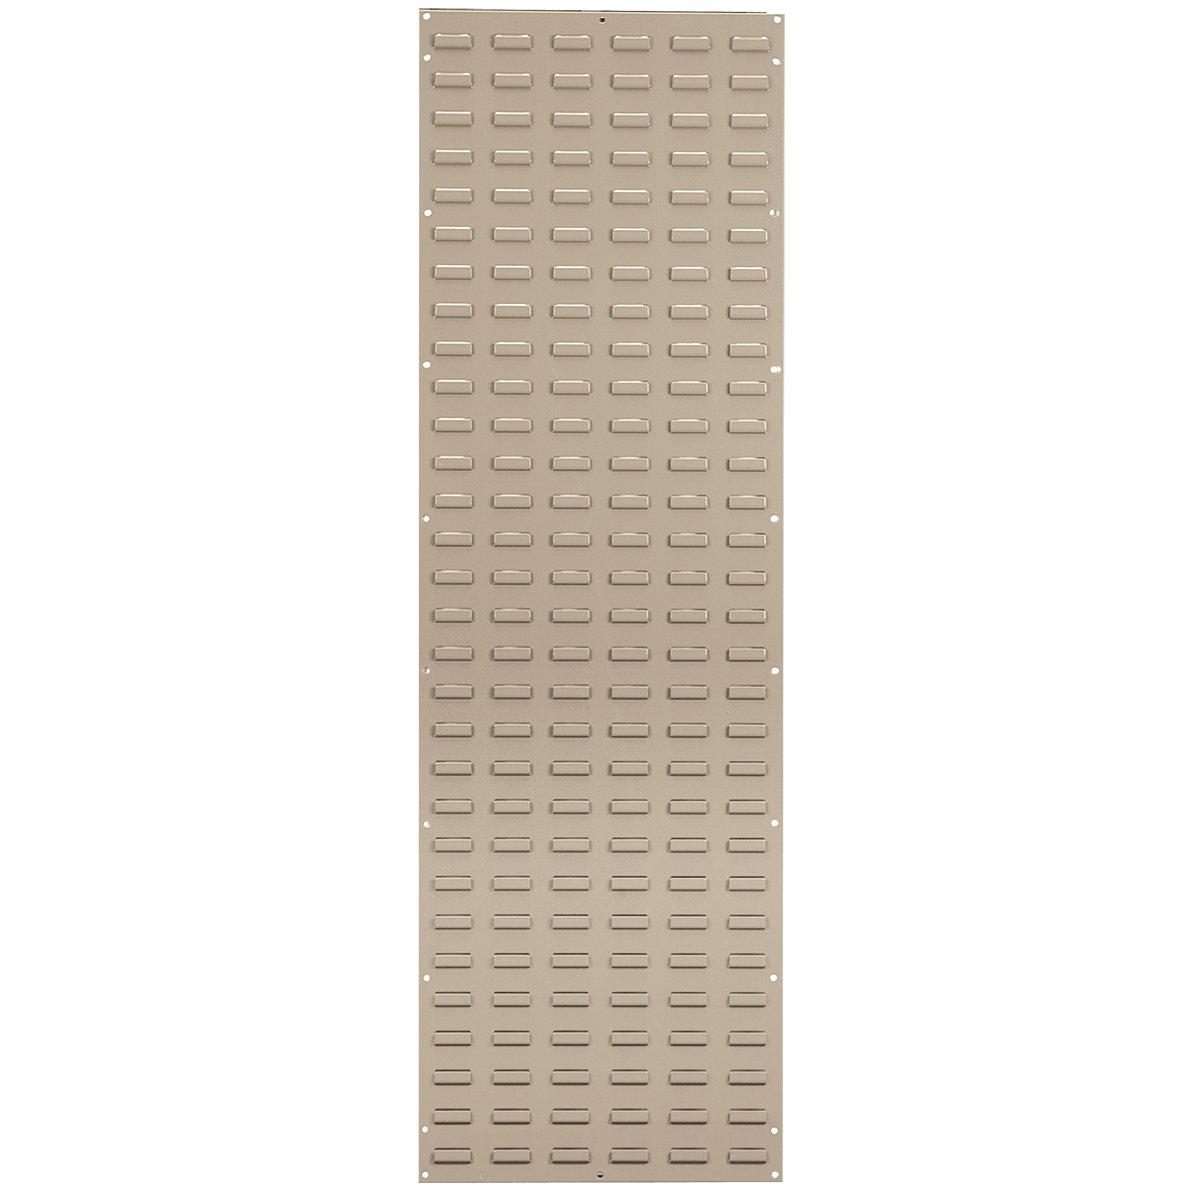 Akro-Mils 30118BEIGE Louvered Wall Panel for Hanging Plastic Storage Bins, 18 x 61, Beige,